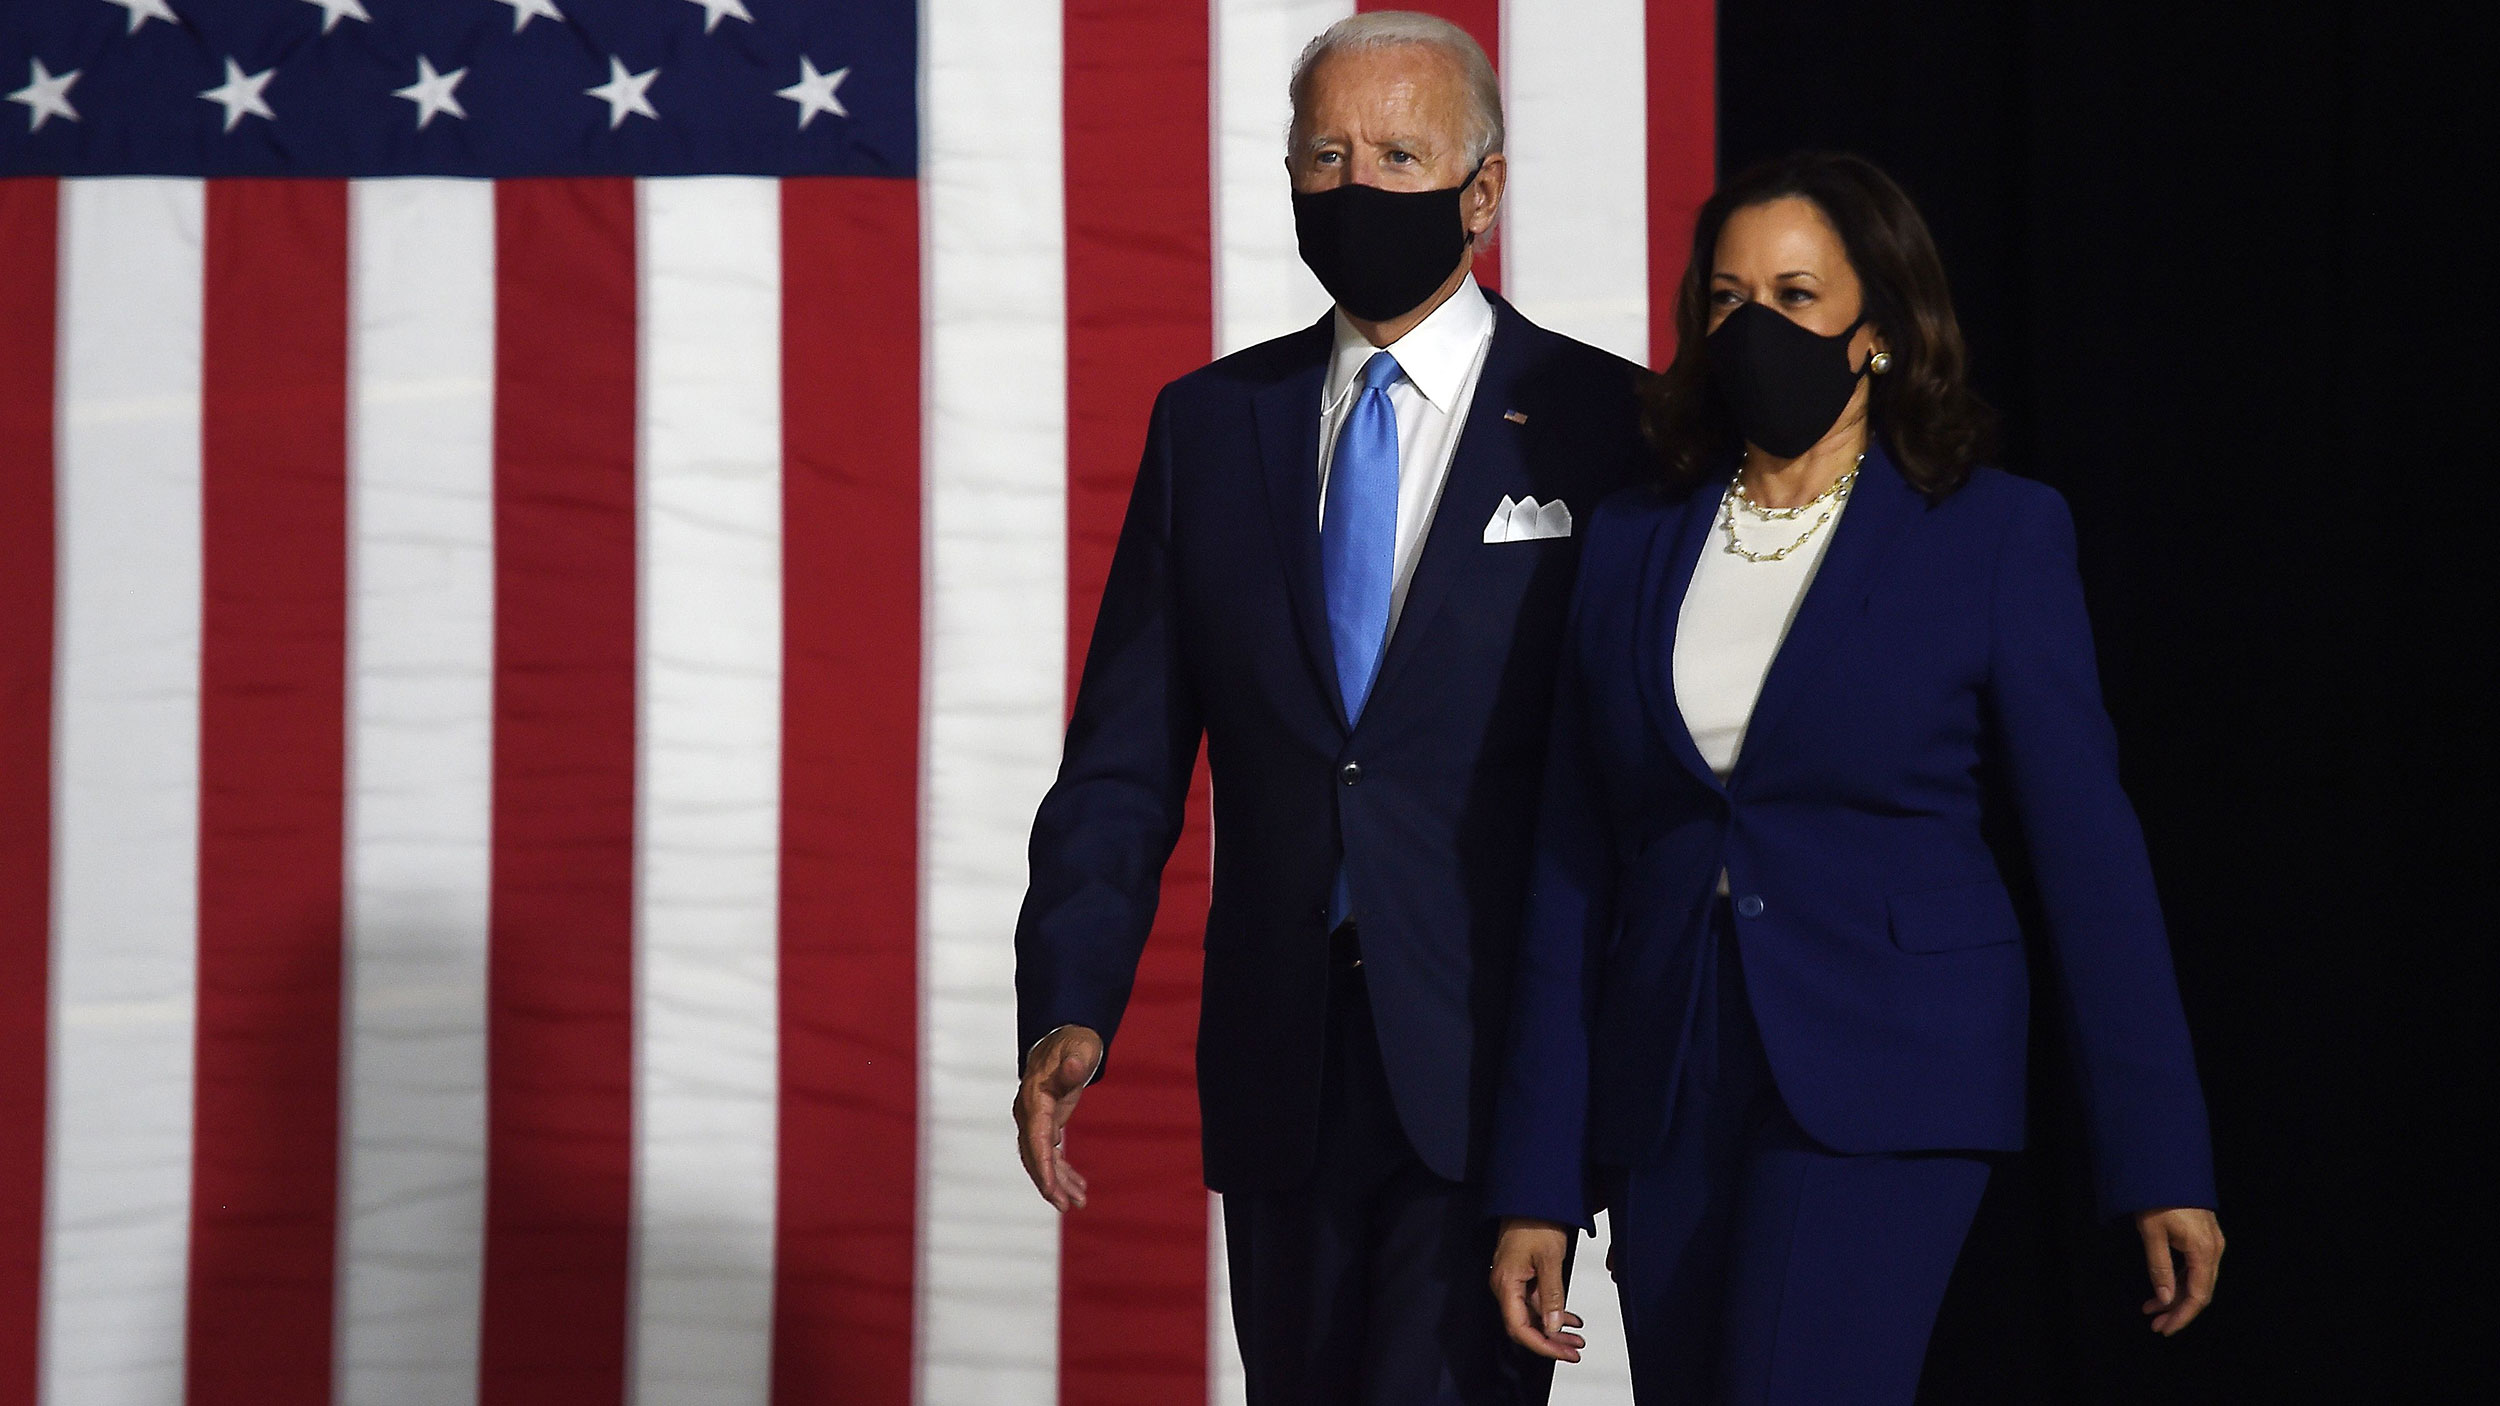 Biden says campaign raised $26 million in one day since Harris joined the ticket